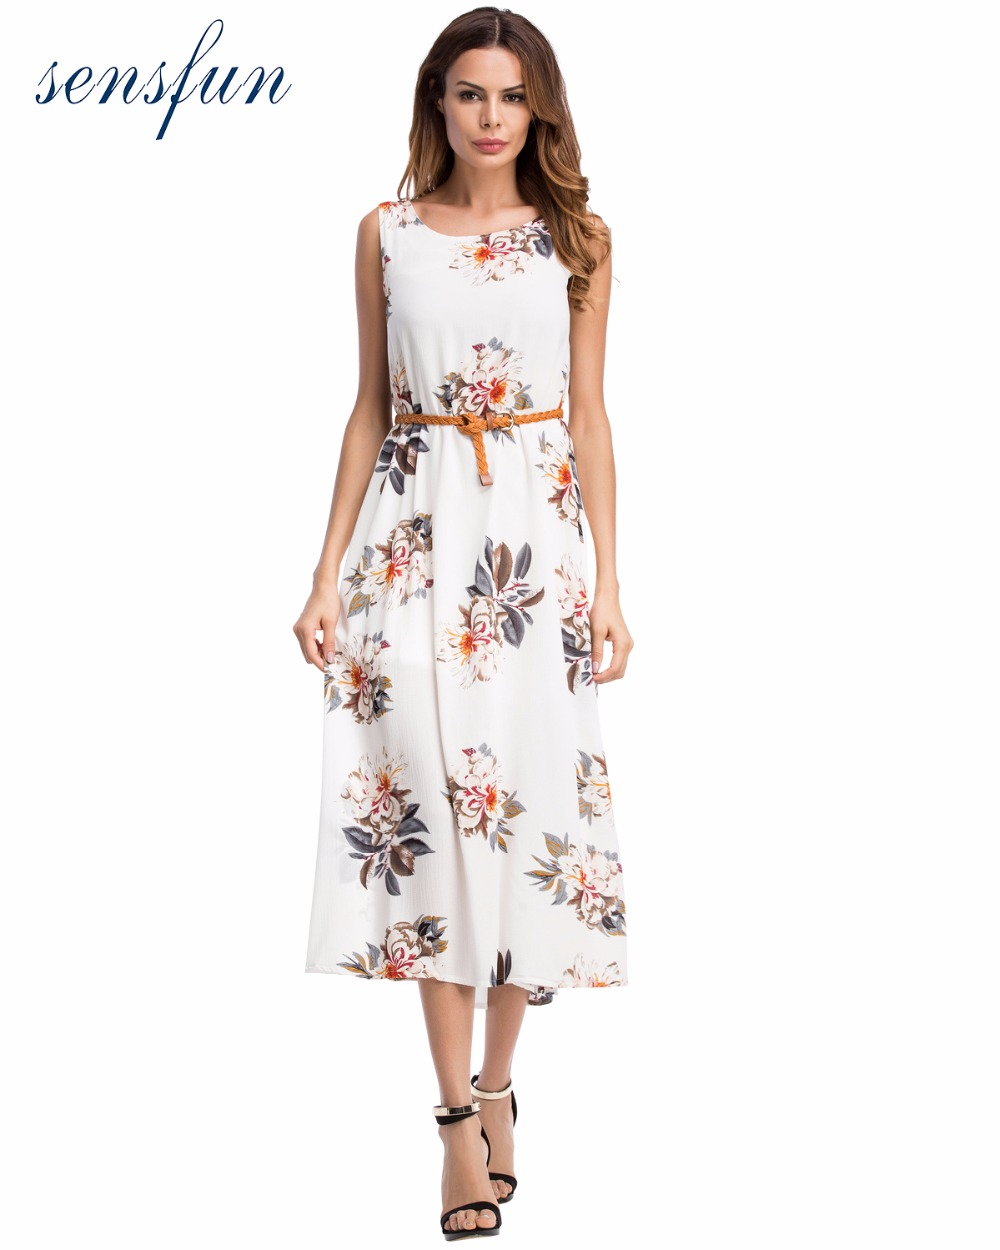 Sensfun Summer Dress 2017 Women Cotton Vintage Dress Casual Dress Swing With belt Floral Vestidos Retra Party Dresses Sundress